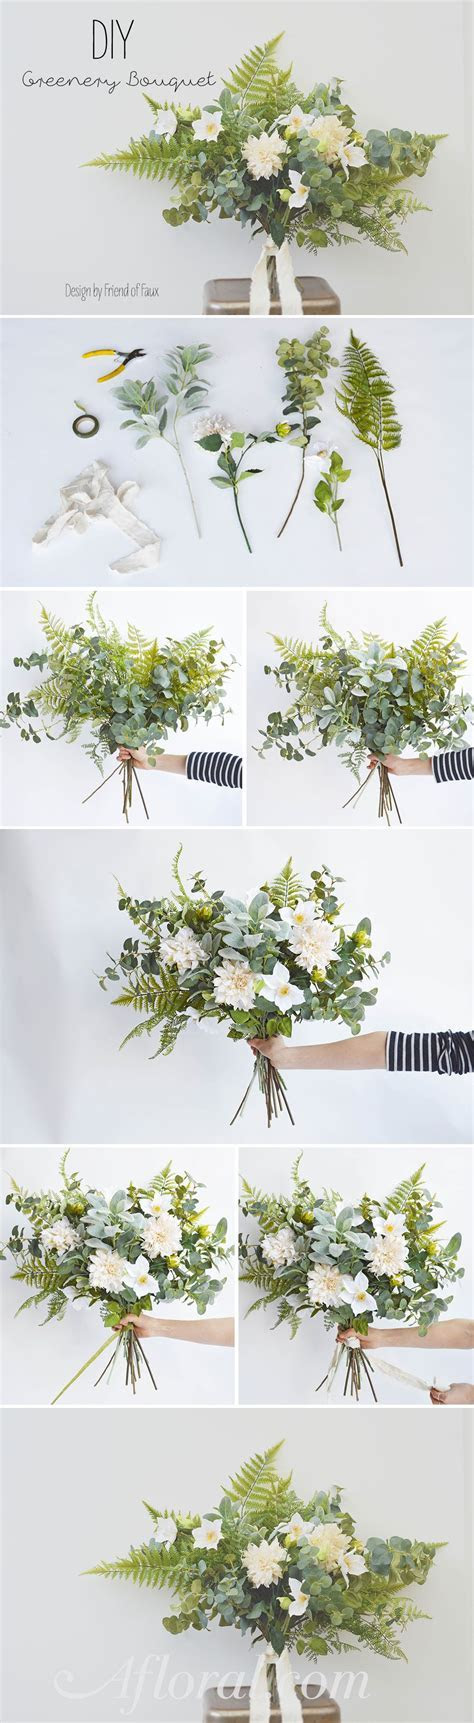 DIY Greenery Bouquet   Wedding   Wedding bouquets, Diy